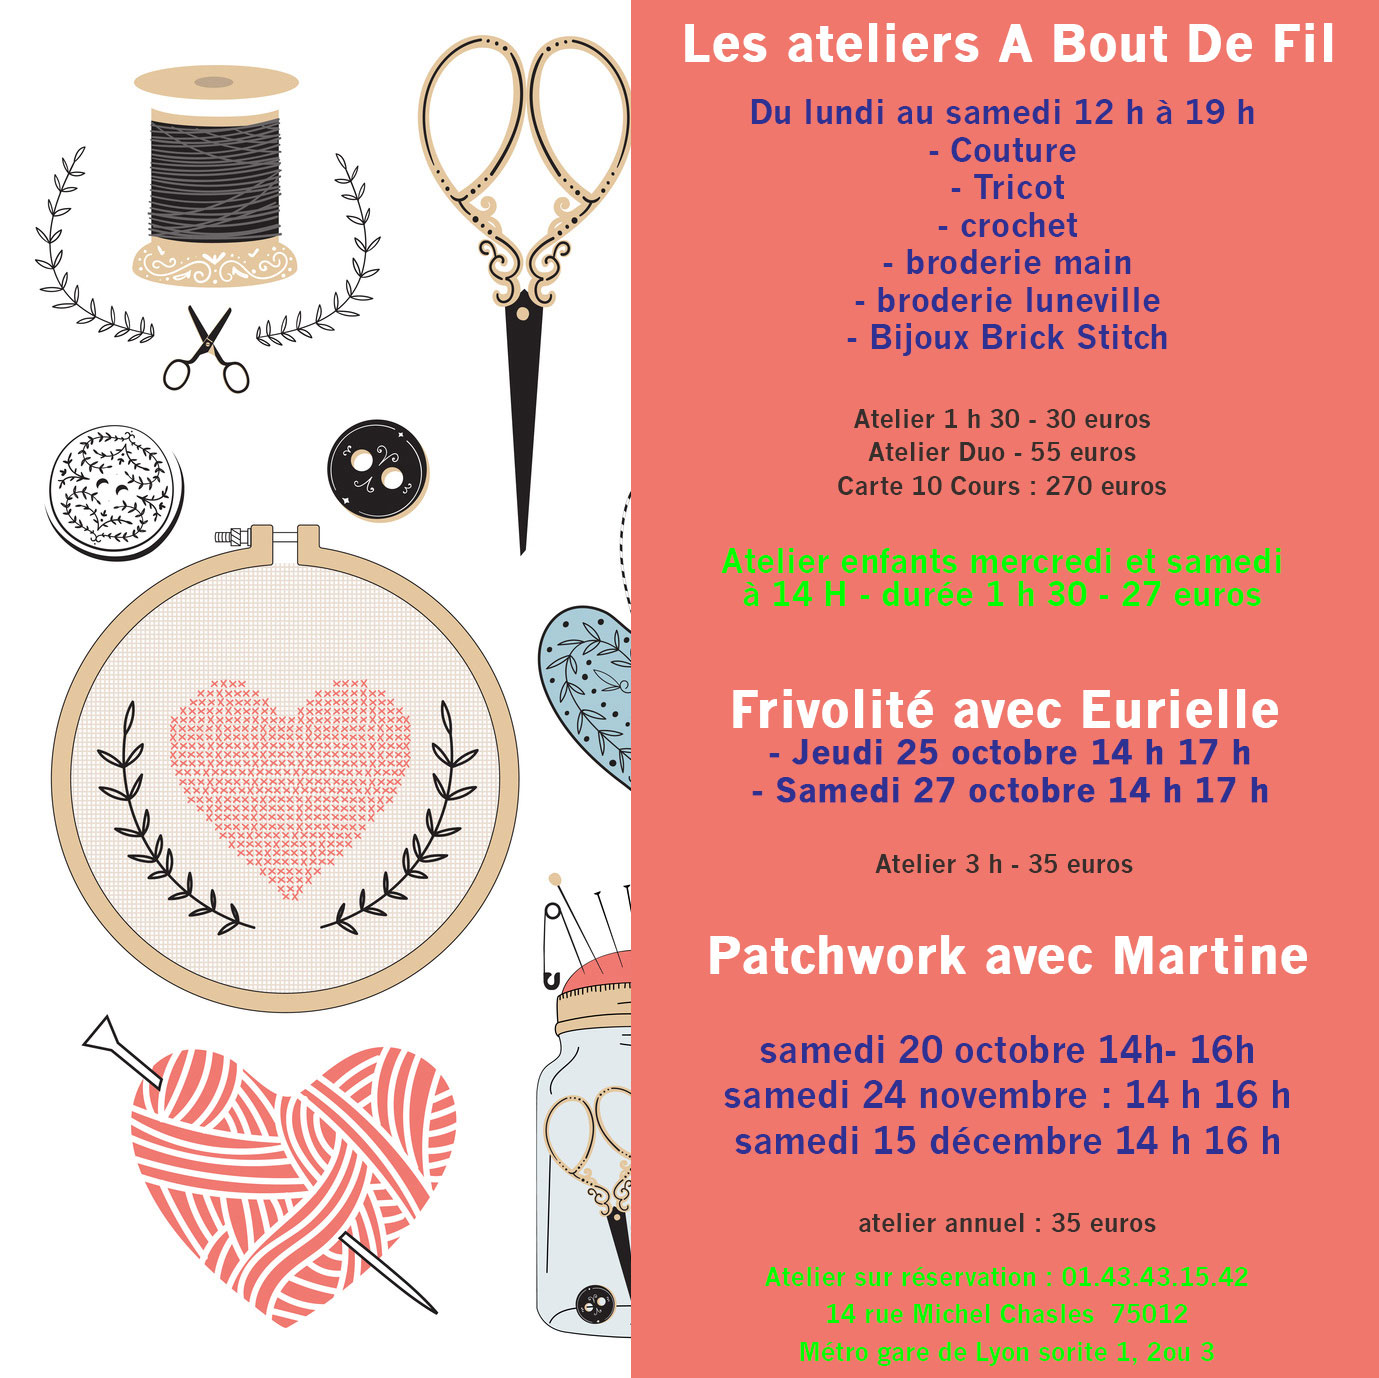 Atelier couture tricot broderie